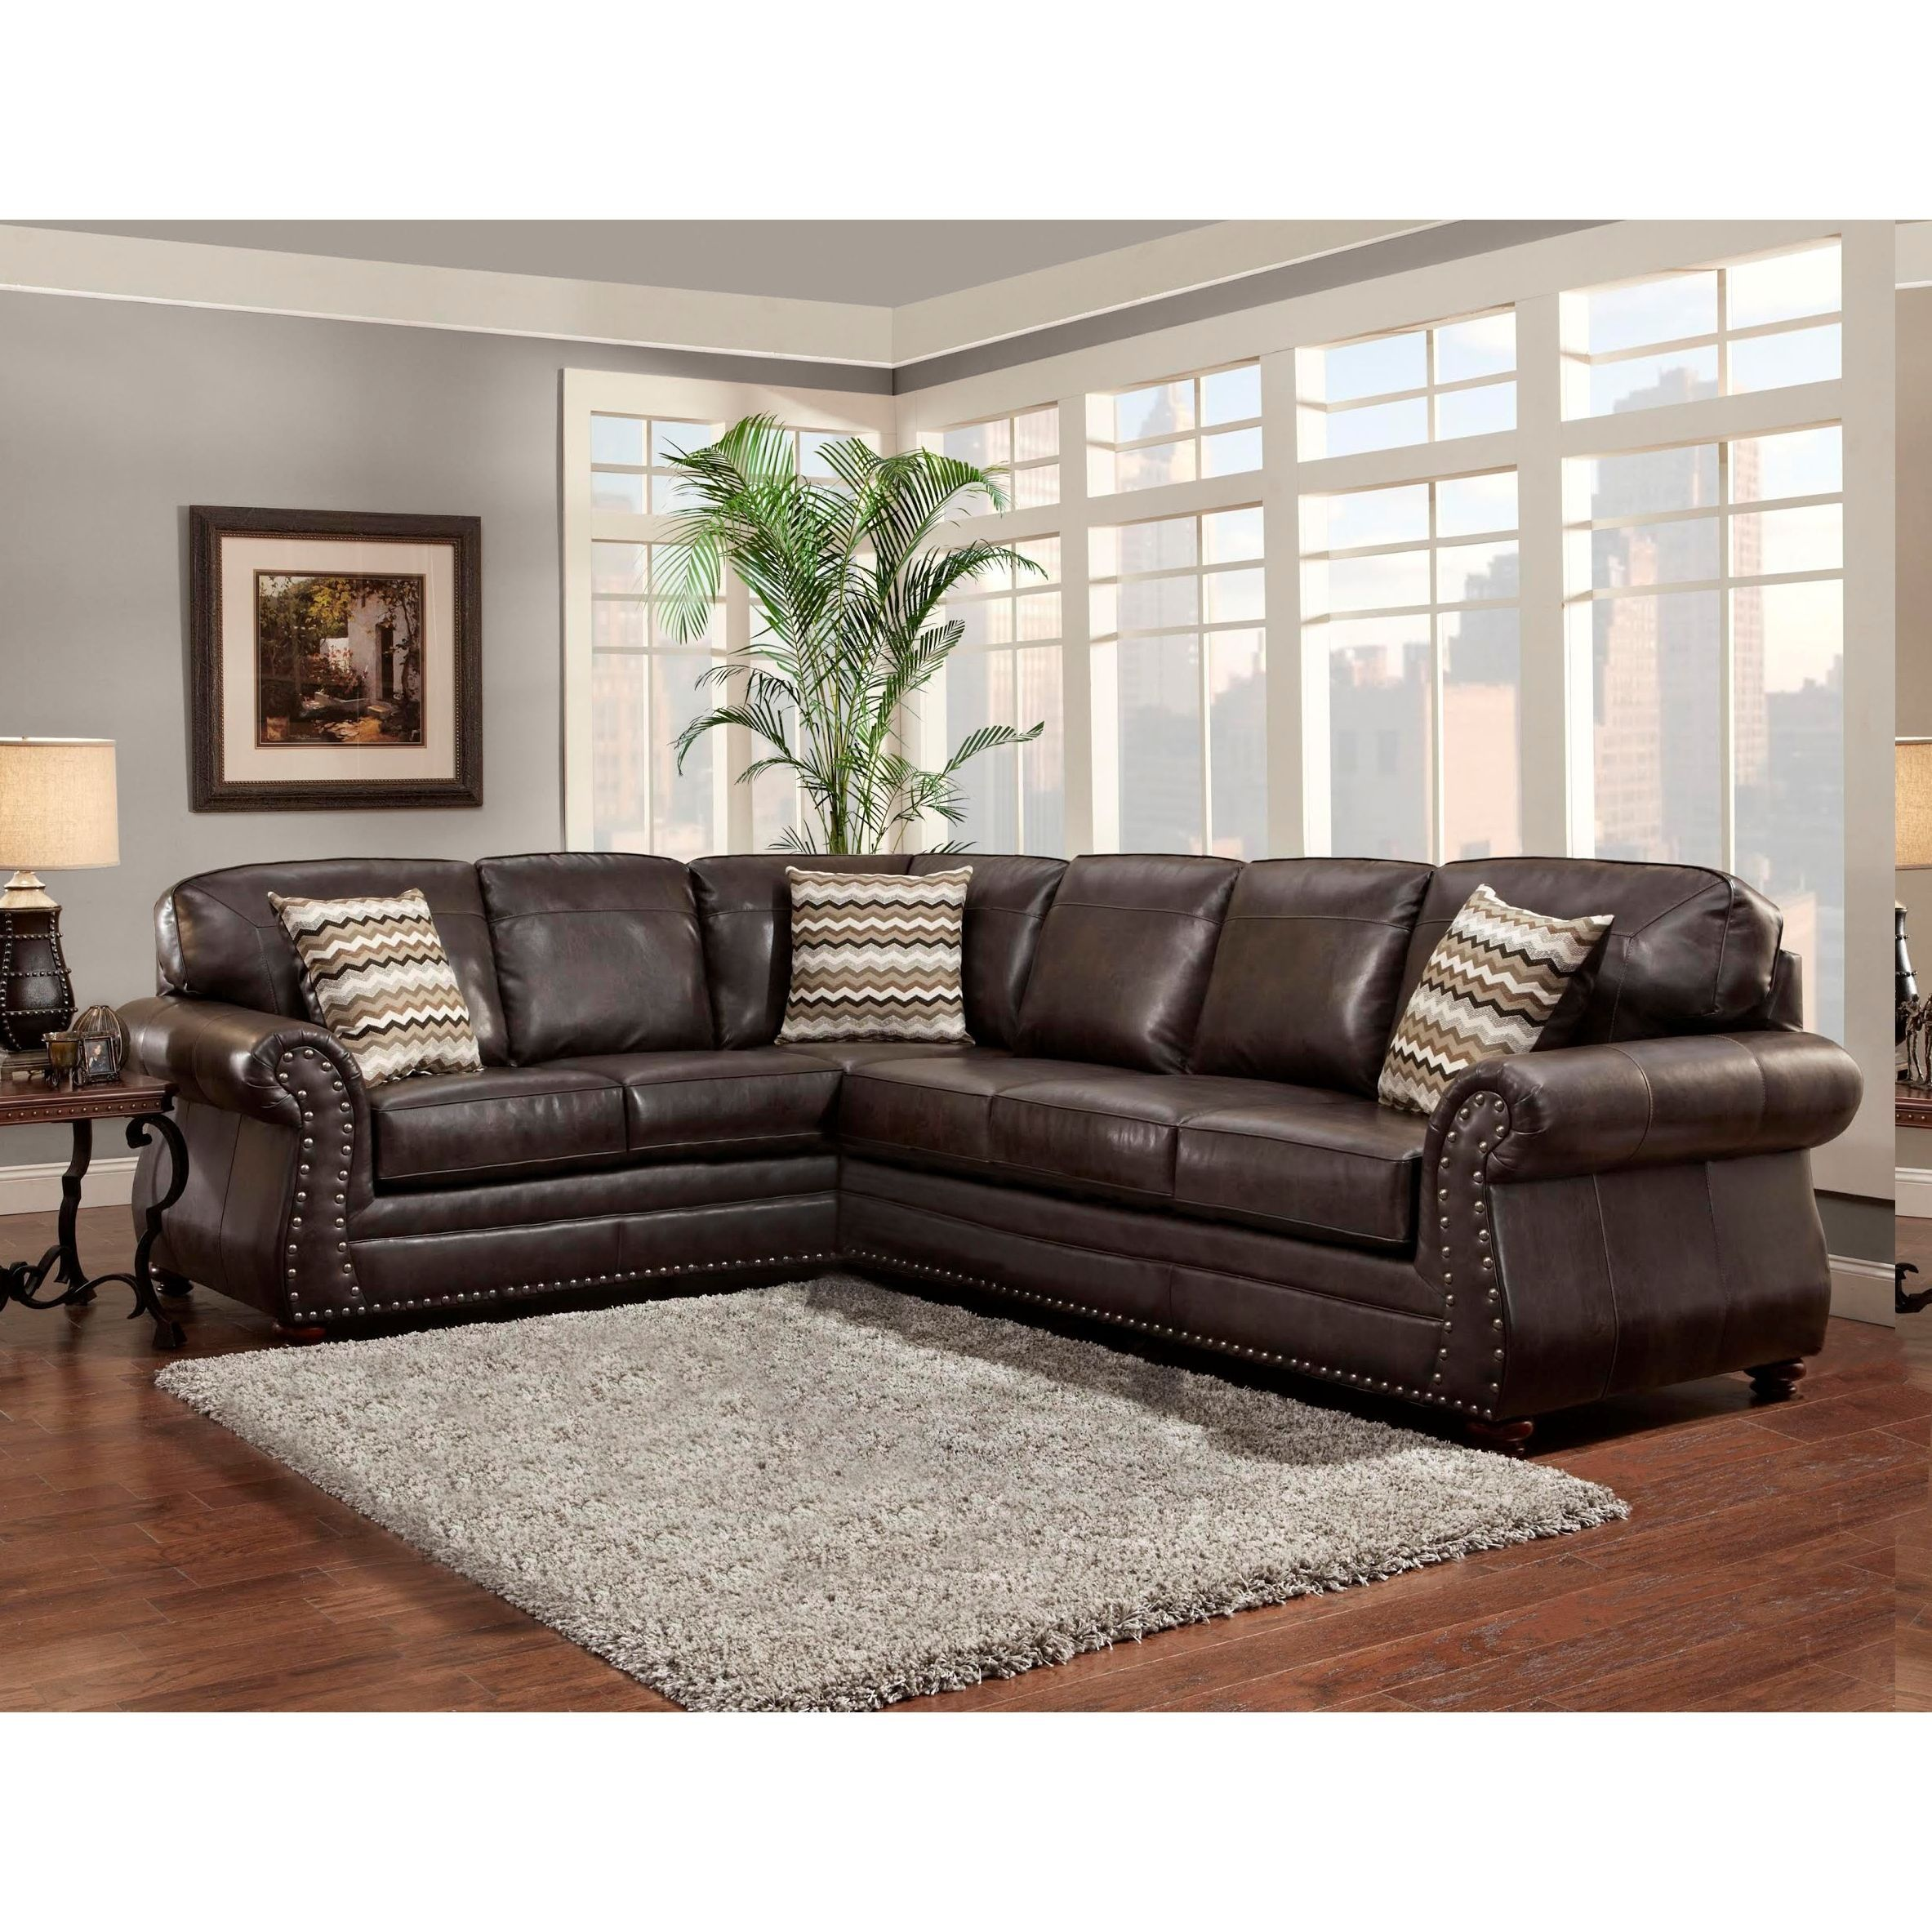 Leather Sectional Sofas For Modern Living Room Brown Living Room Decor Brown Leather Living Room Furniture Leather Living Room Furniture